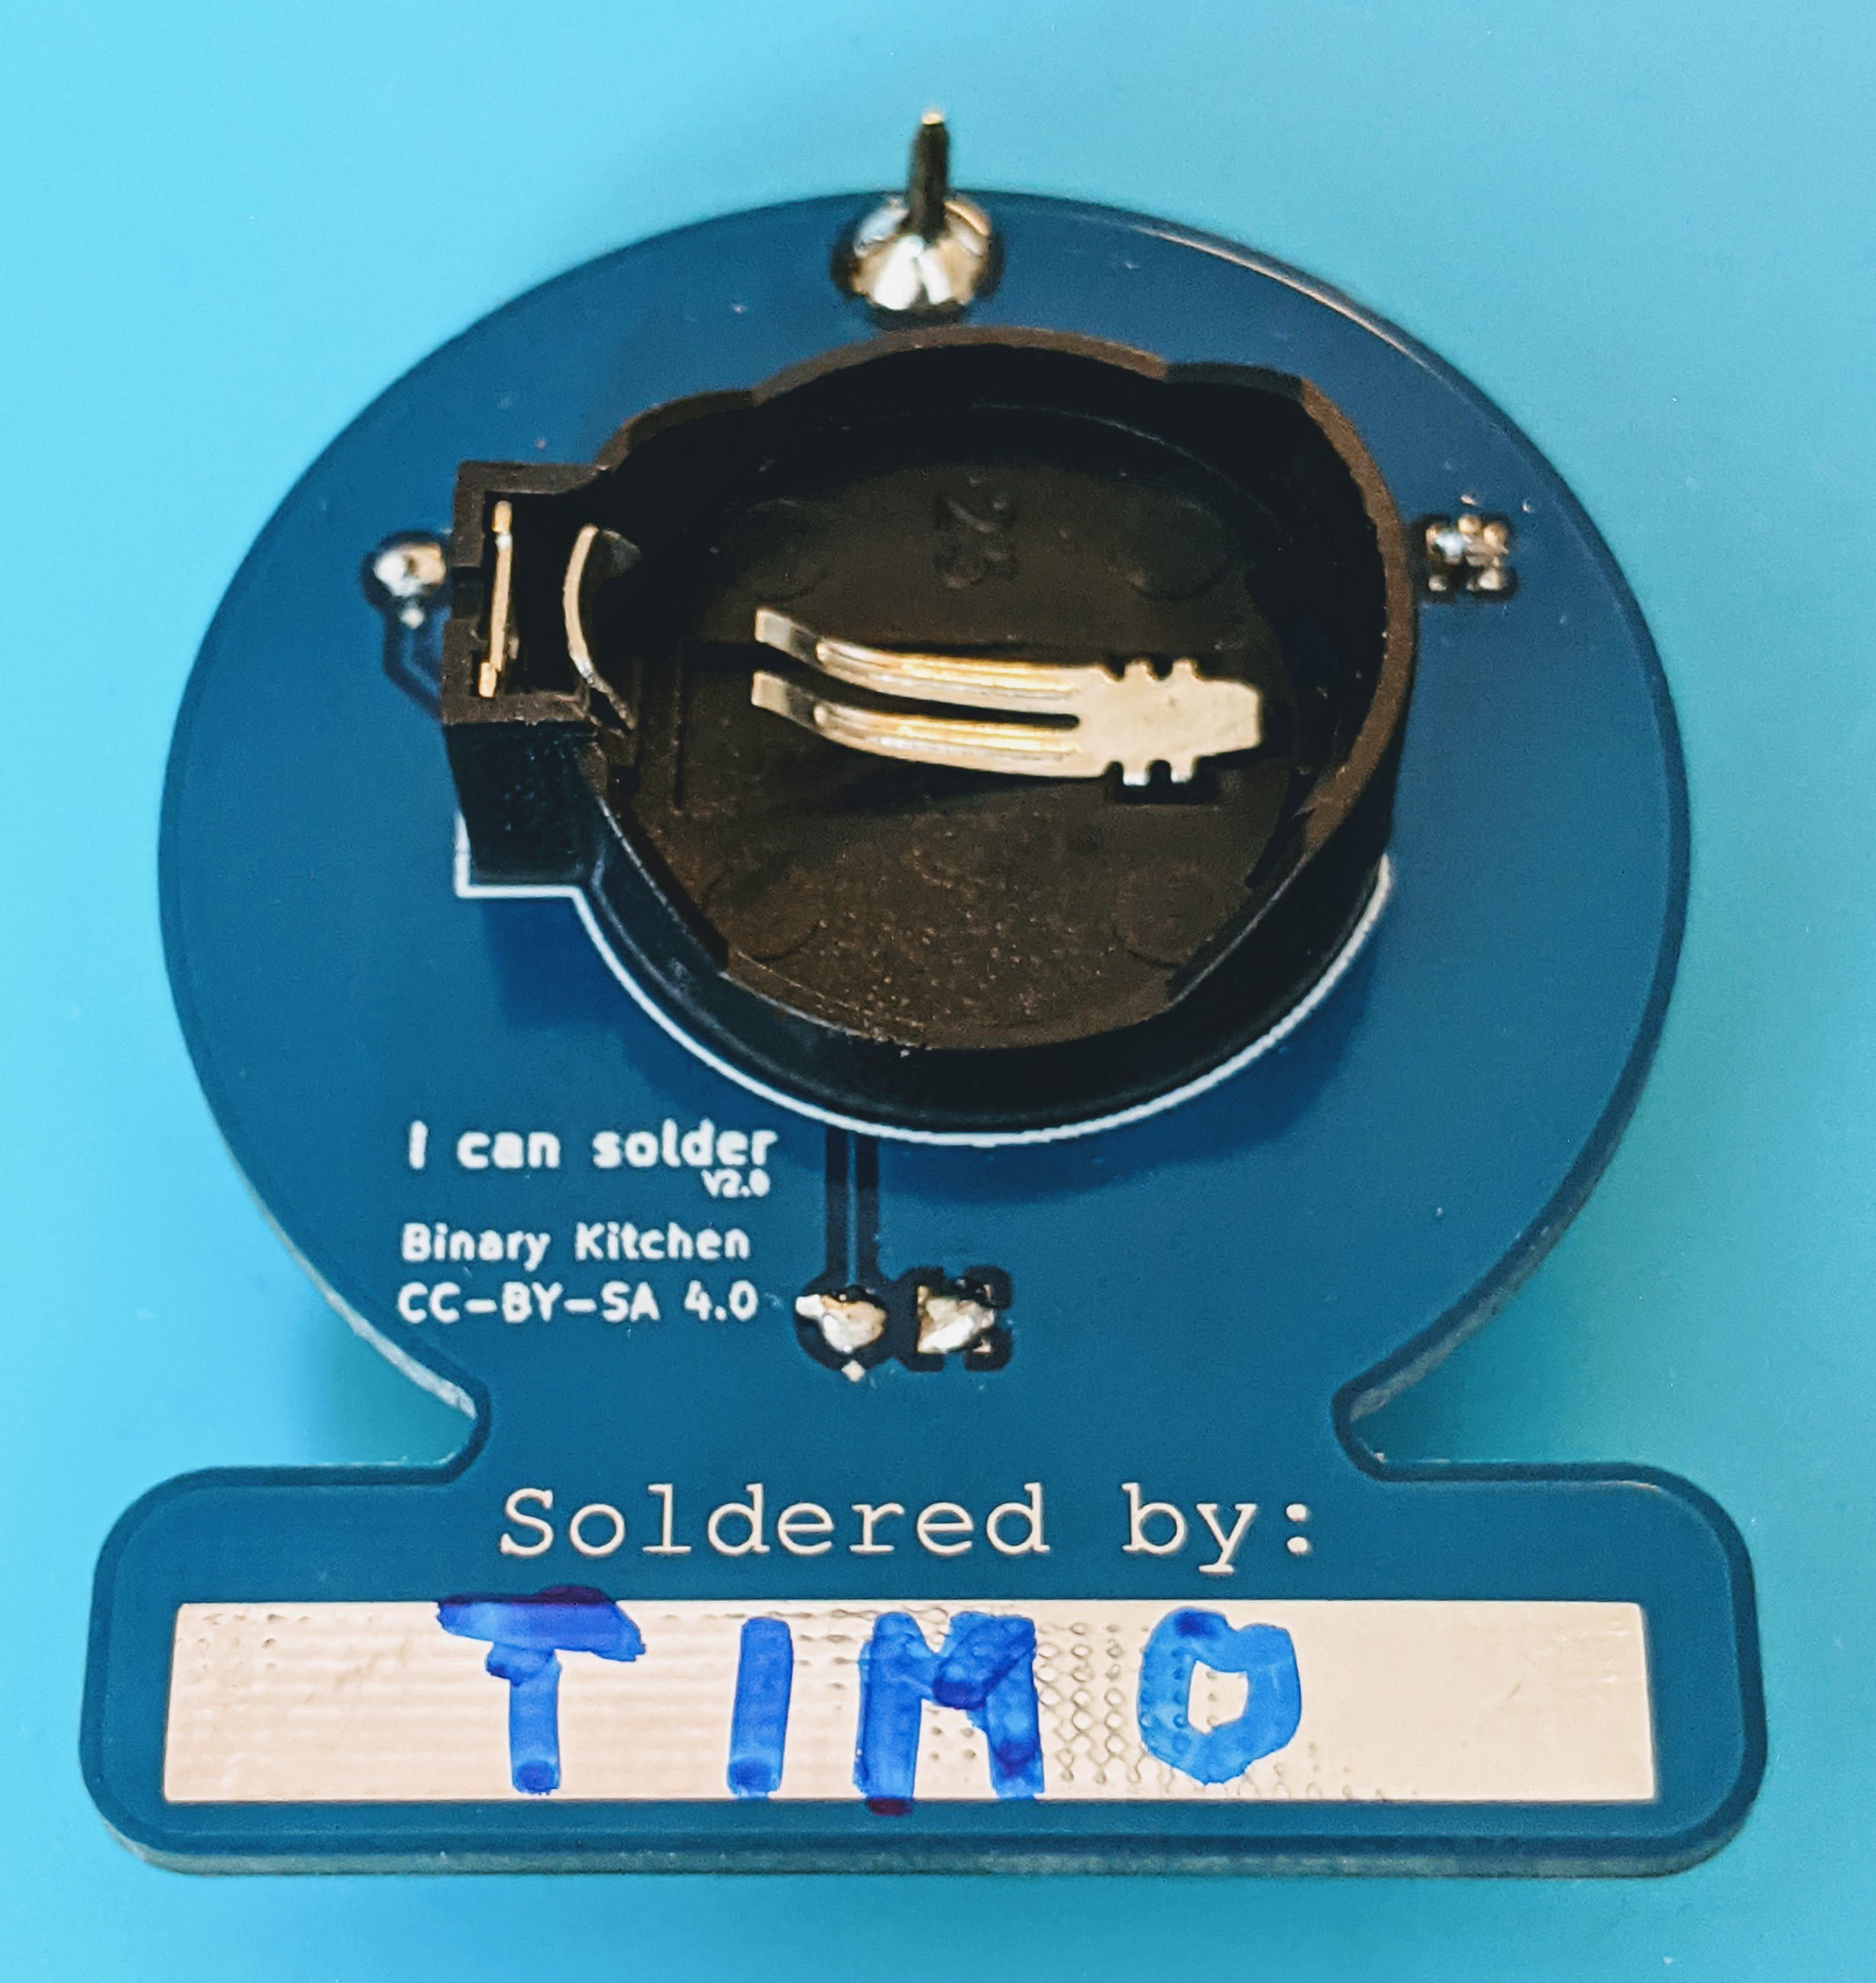 I can solder - This first soldering kit is suitable for everyone